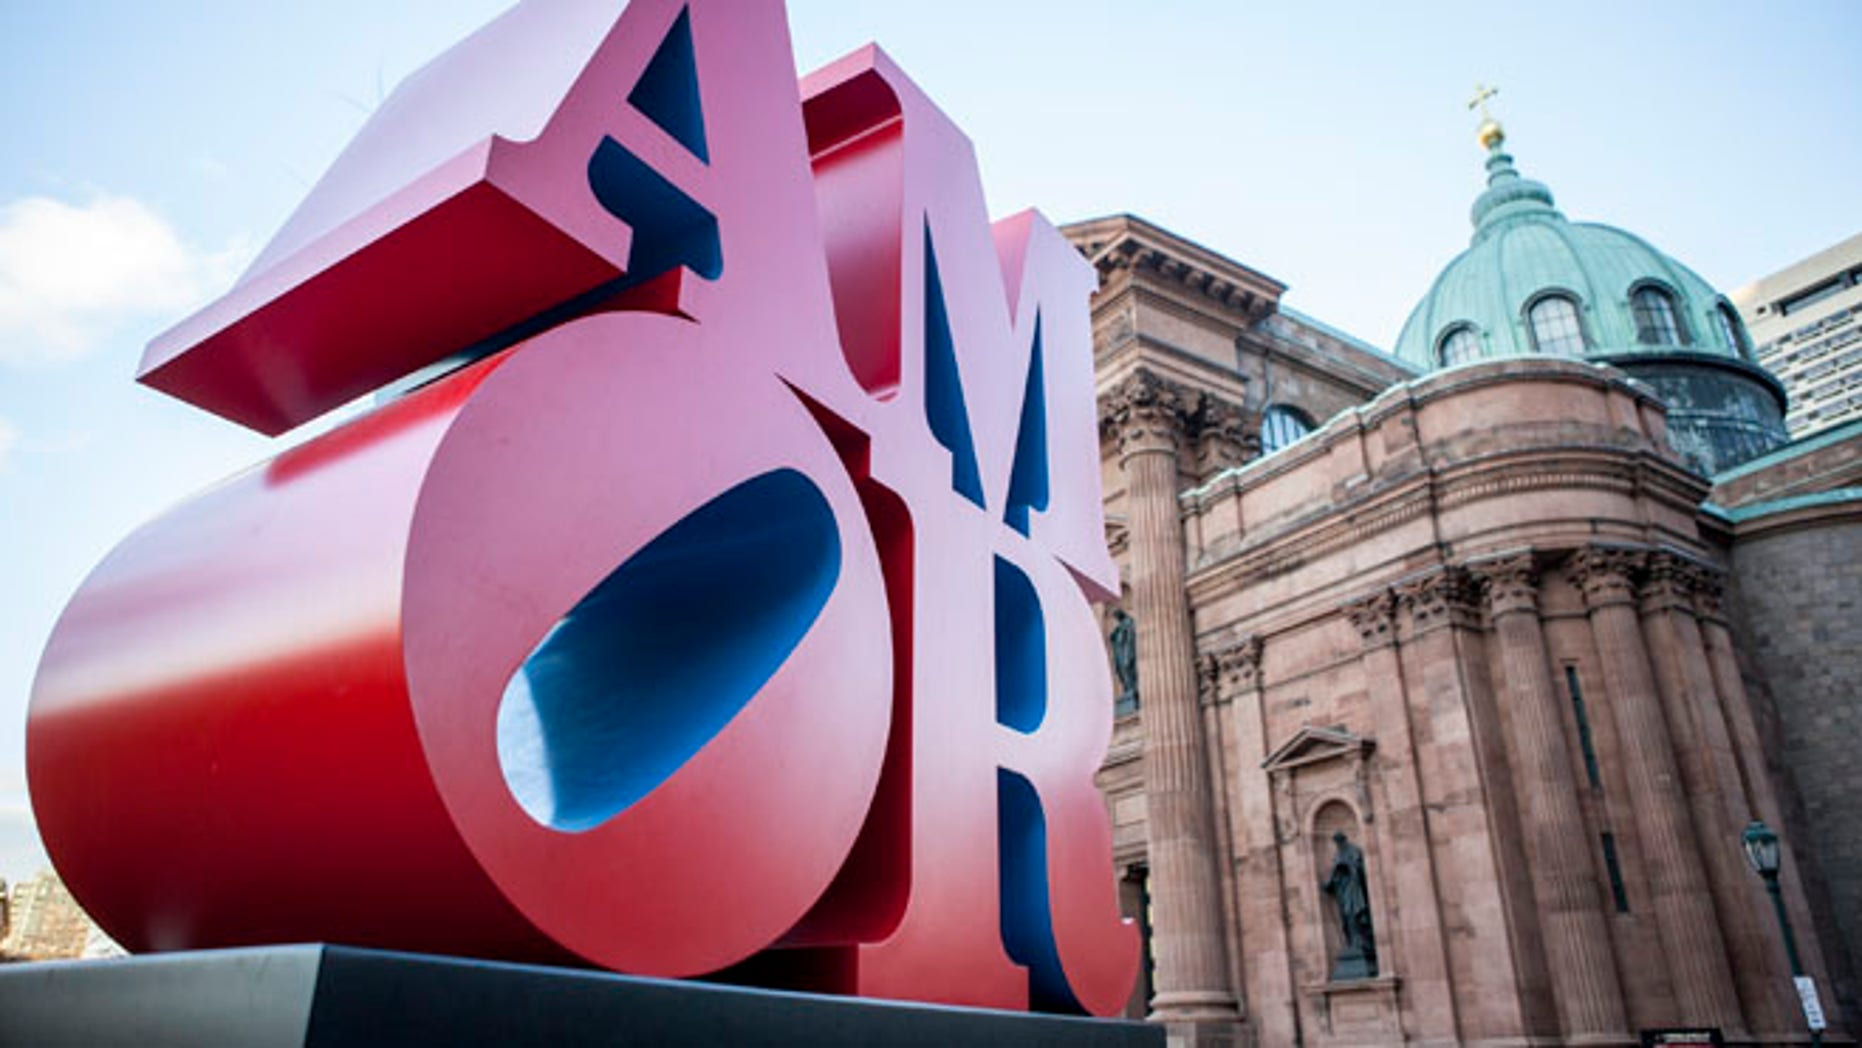 This photo shows Robert Indiana's AMOR sculpture in a park outside Philadelphia's Cathedral Basilica of Saints Peter and Paul, Friday, Dec. 2, 2016. Officials say the sculpture, originally loaned to Philadelphia for last year's papal visit, will permanently remain in the city. It's a Spanish and Latin version of Indiana's LOVE sculpture, which is a Philadelphia landmark. (AP Photo/Michael R. Sisak)